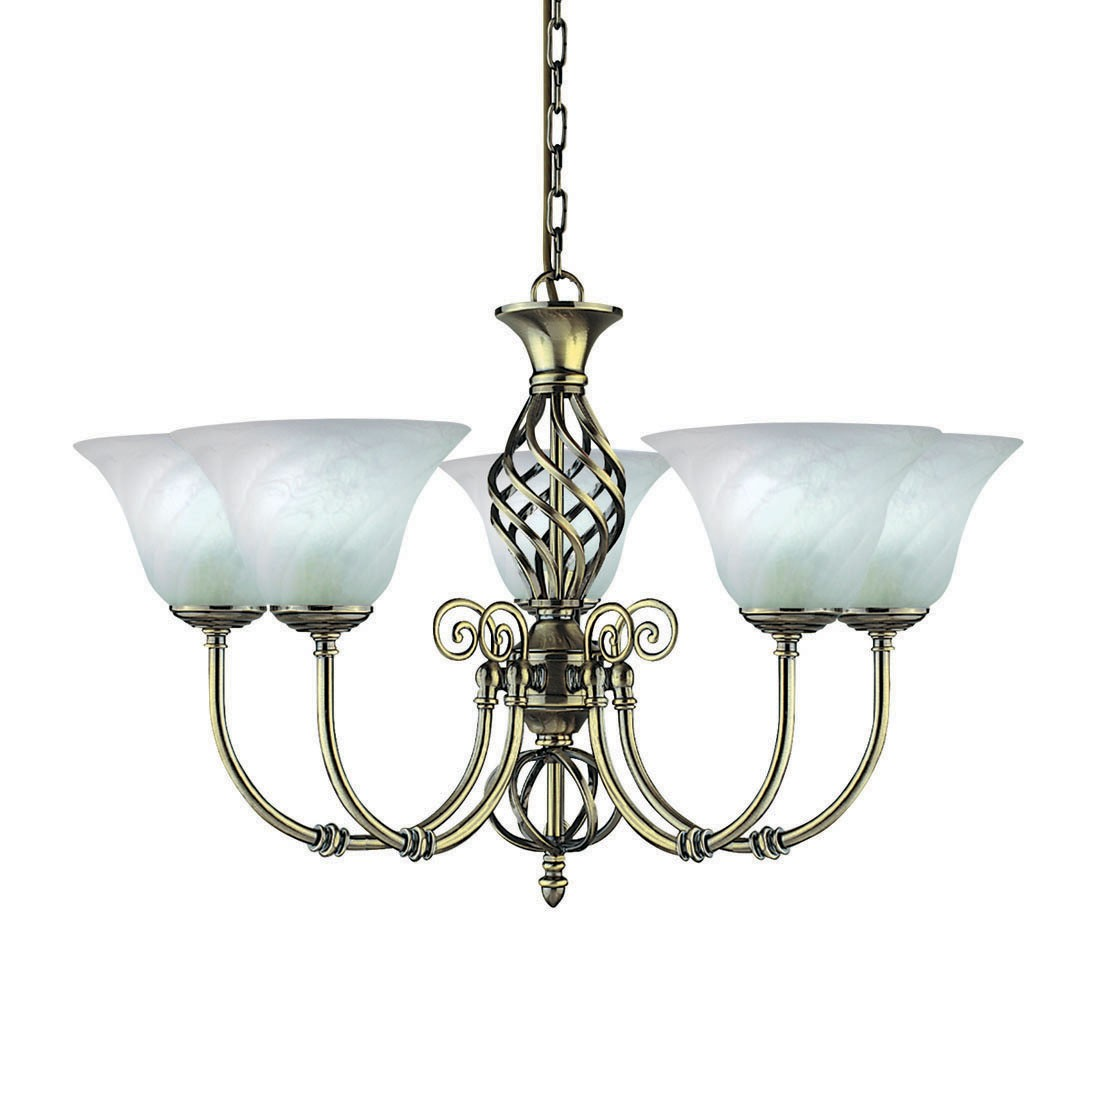 Searchlight Electric Sculptured Ice 8083 3cc Ceiling Light: ANDRETTI ANTIQUE BRASS 8 LIGHT FITTING WITH CREAM SHADES